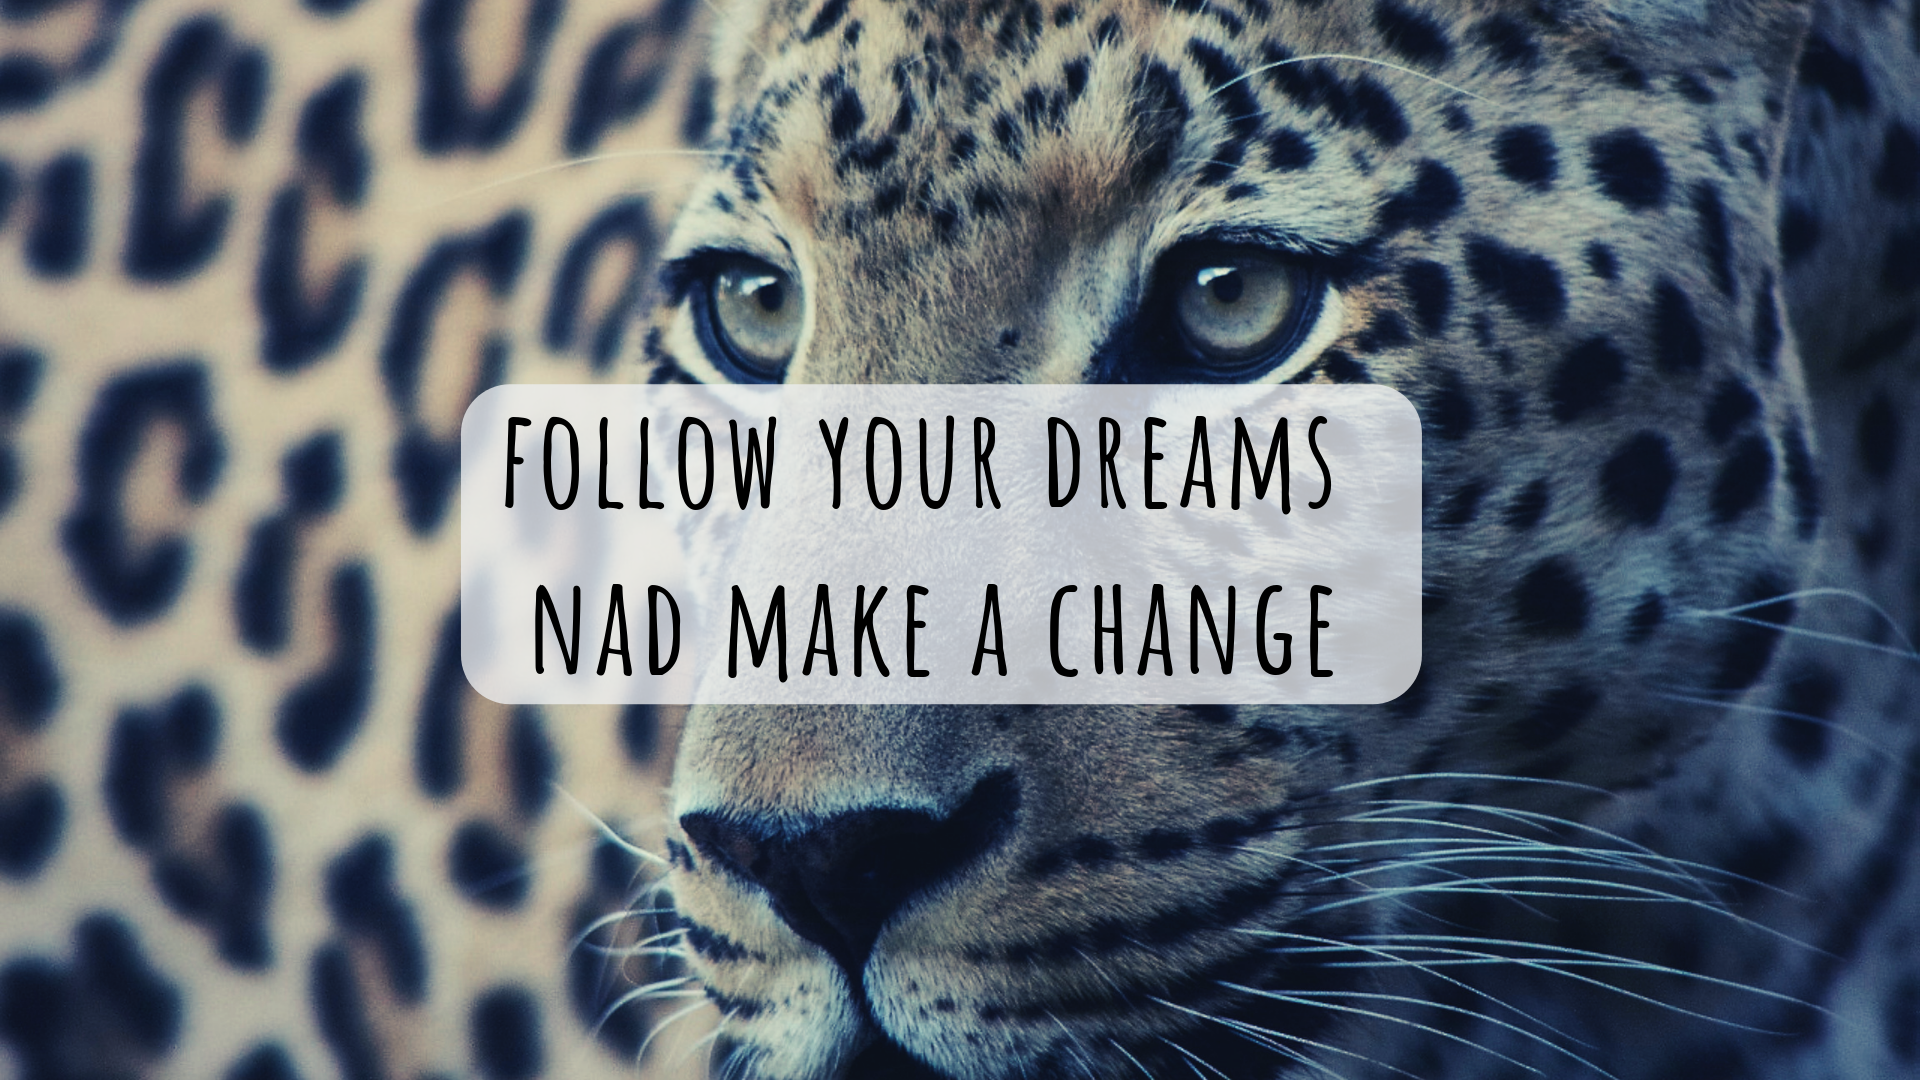 follow your dreams nad make a change